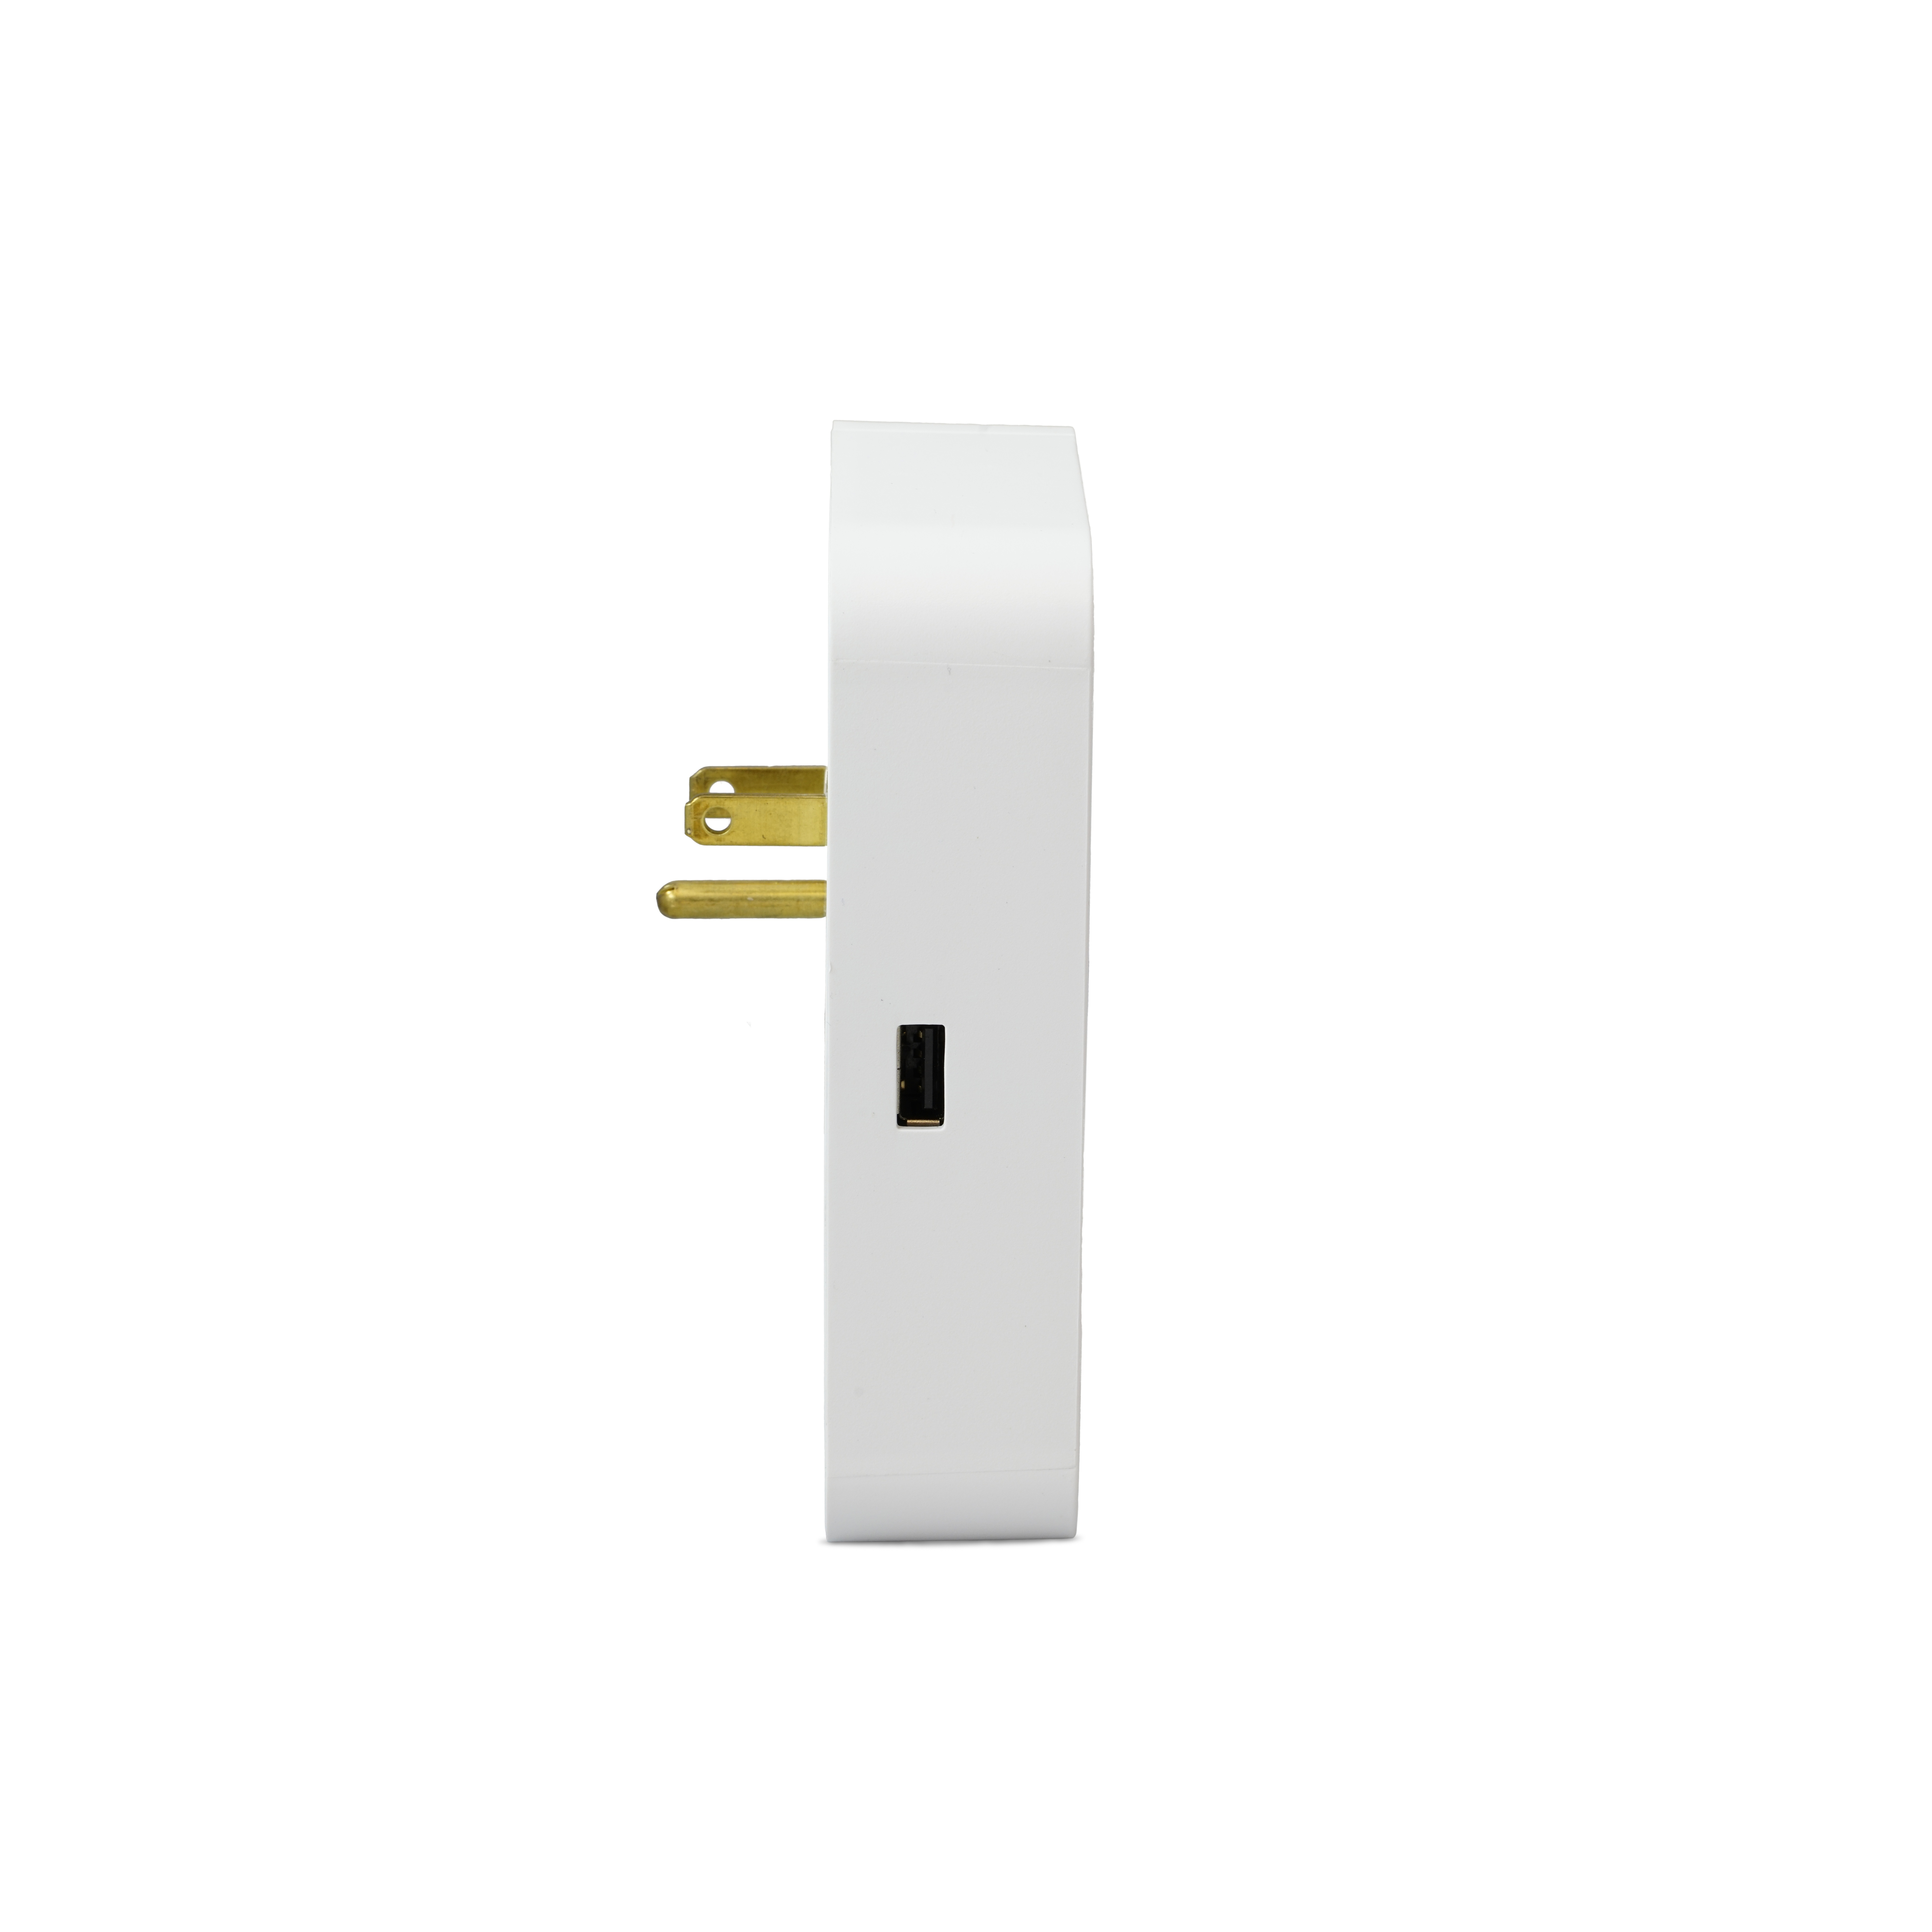 Smart Outlet ² (USB)